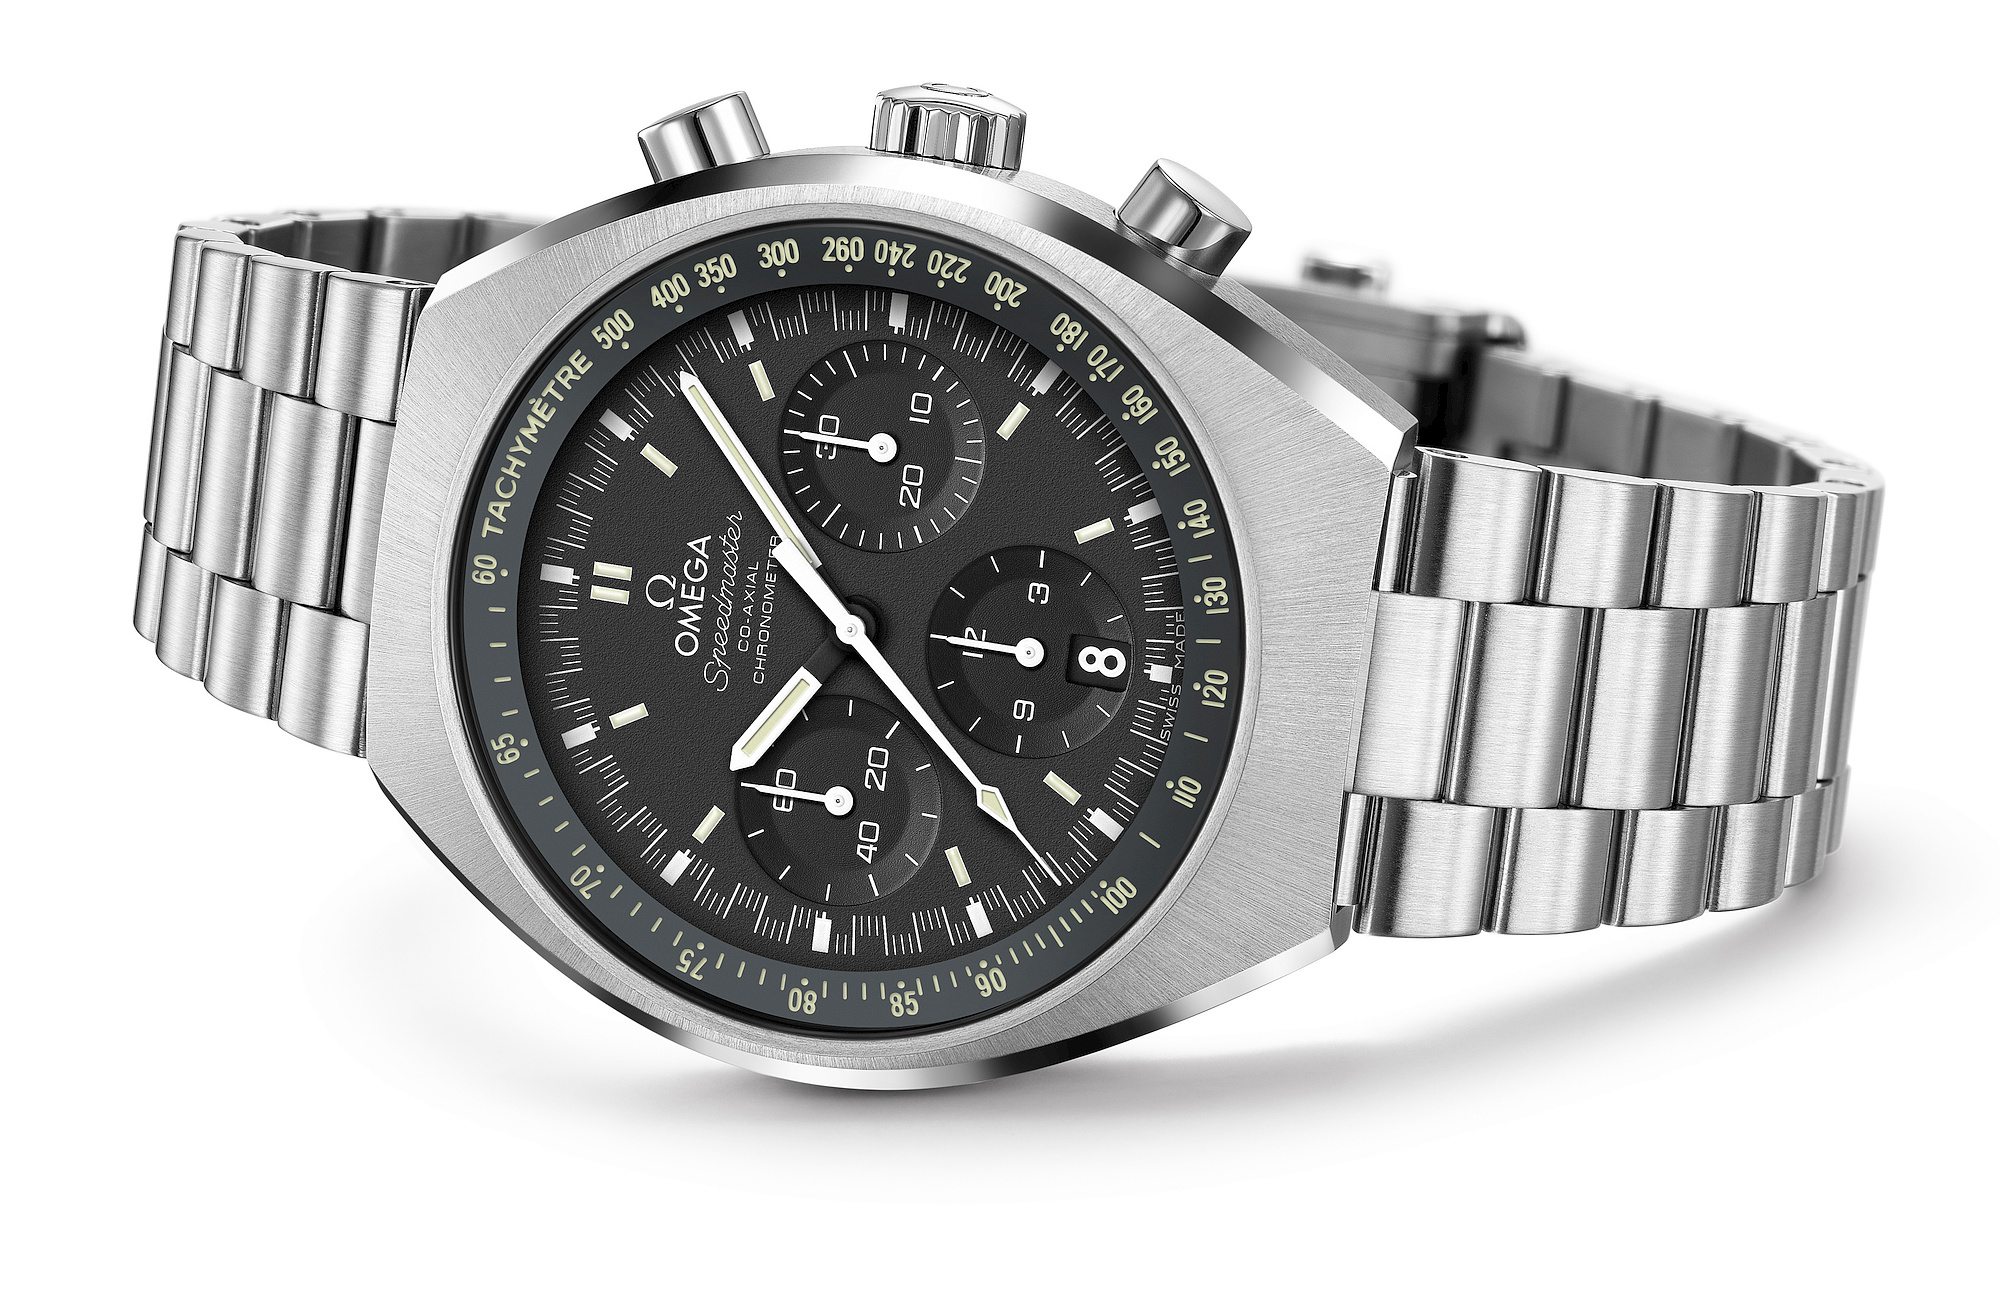 Montre Omega Speedmaster Mark II - Baselworld 2014 Omega